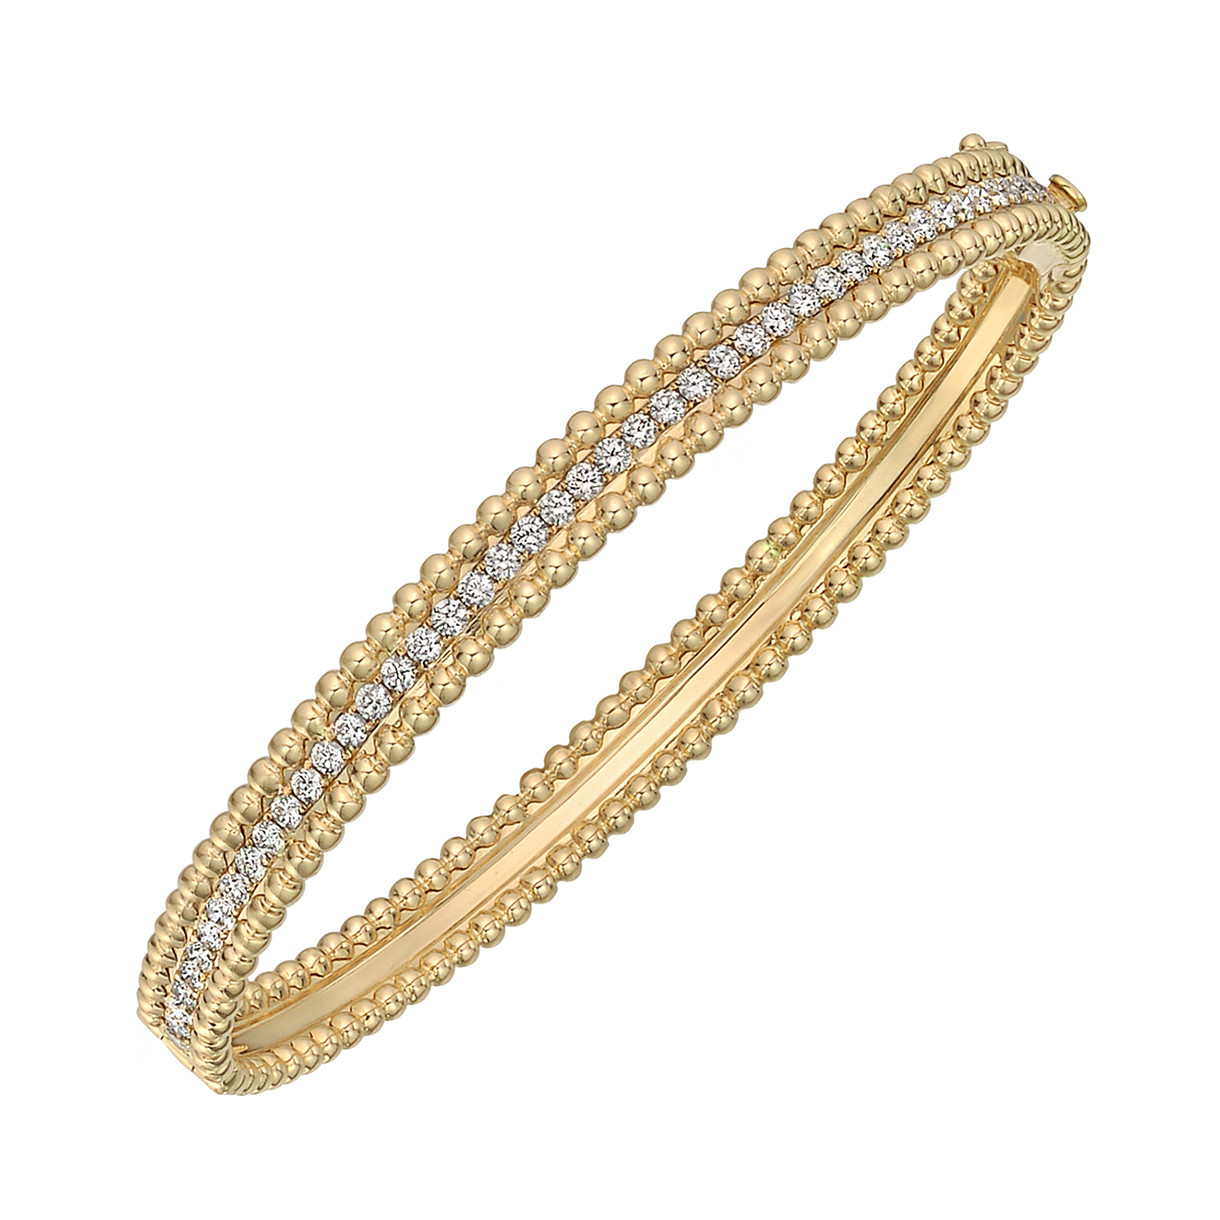 18k Yellow Gold & Diamond Bead Border Bangle